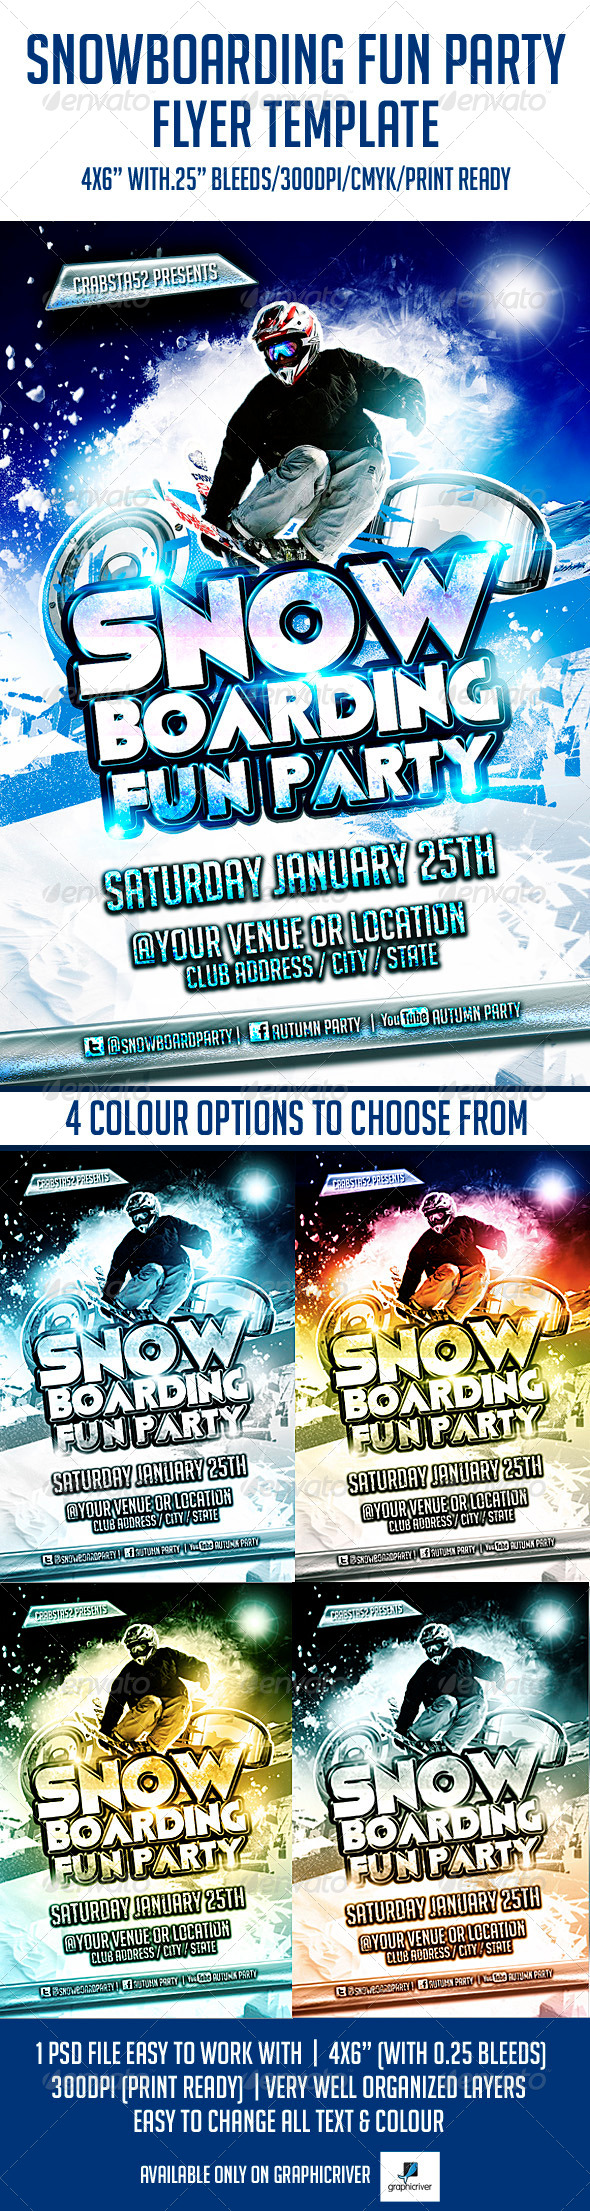 Snowboarding Fun Party Flyer Template